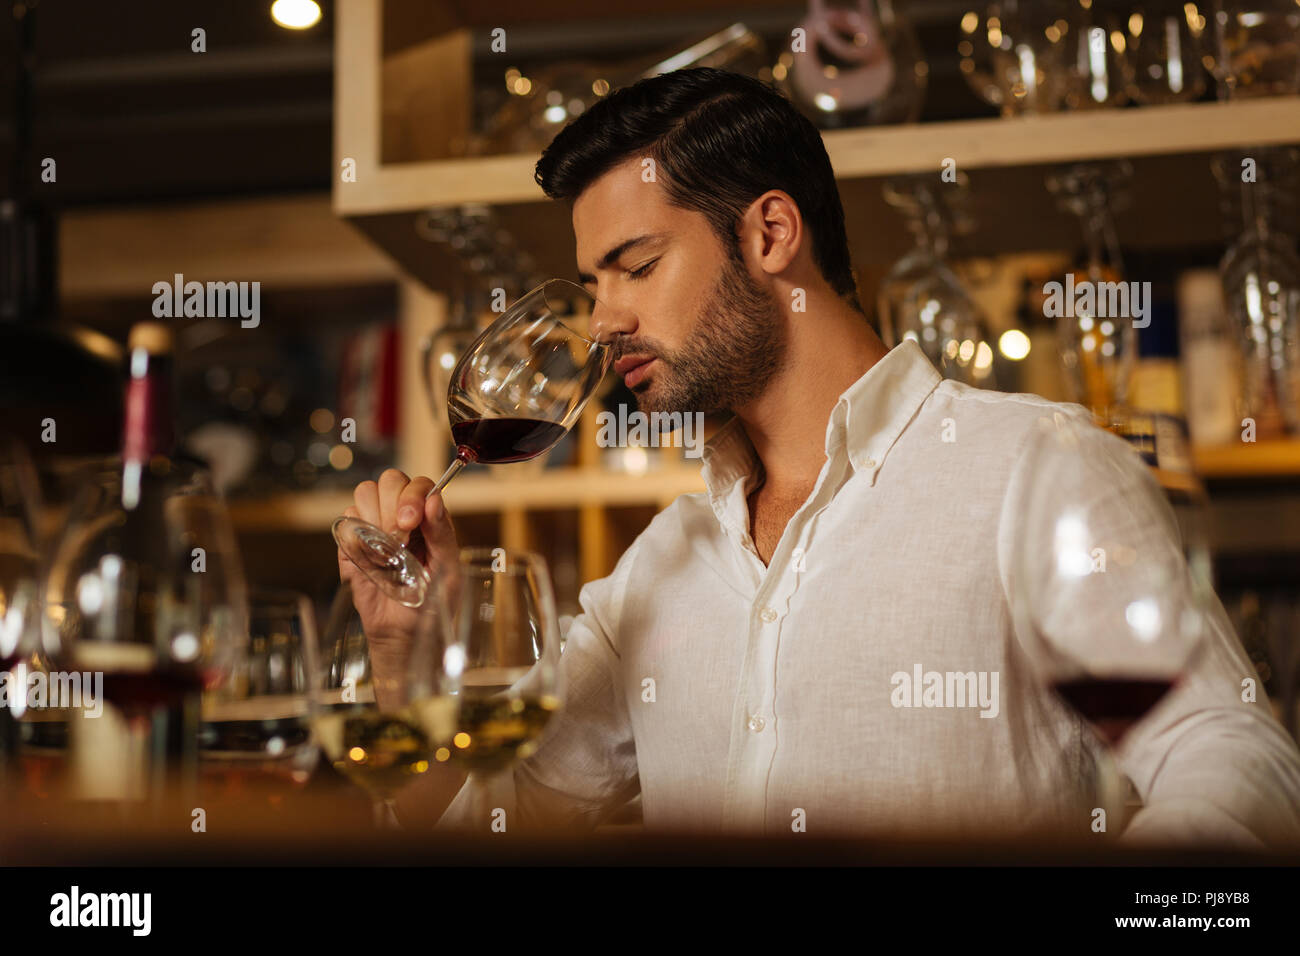 Smart attractive man working as a sommelier - Stock Image